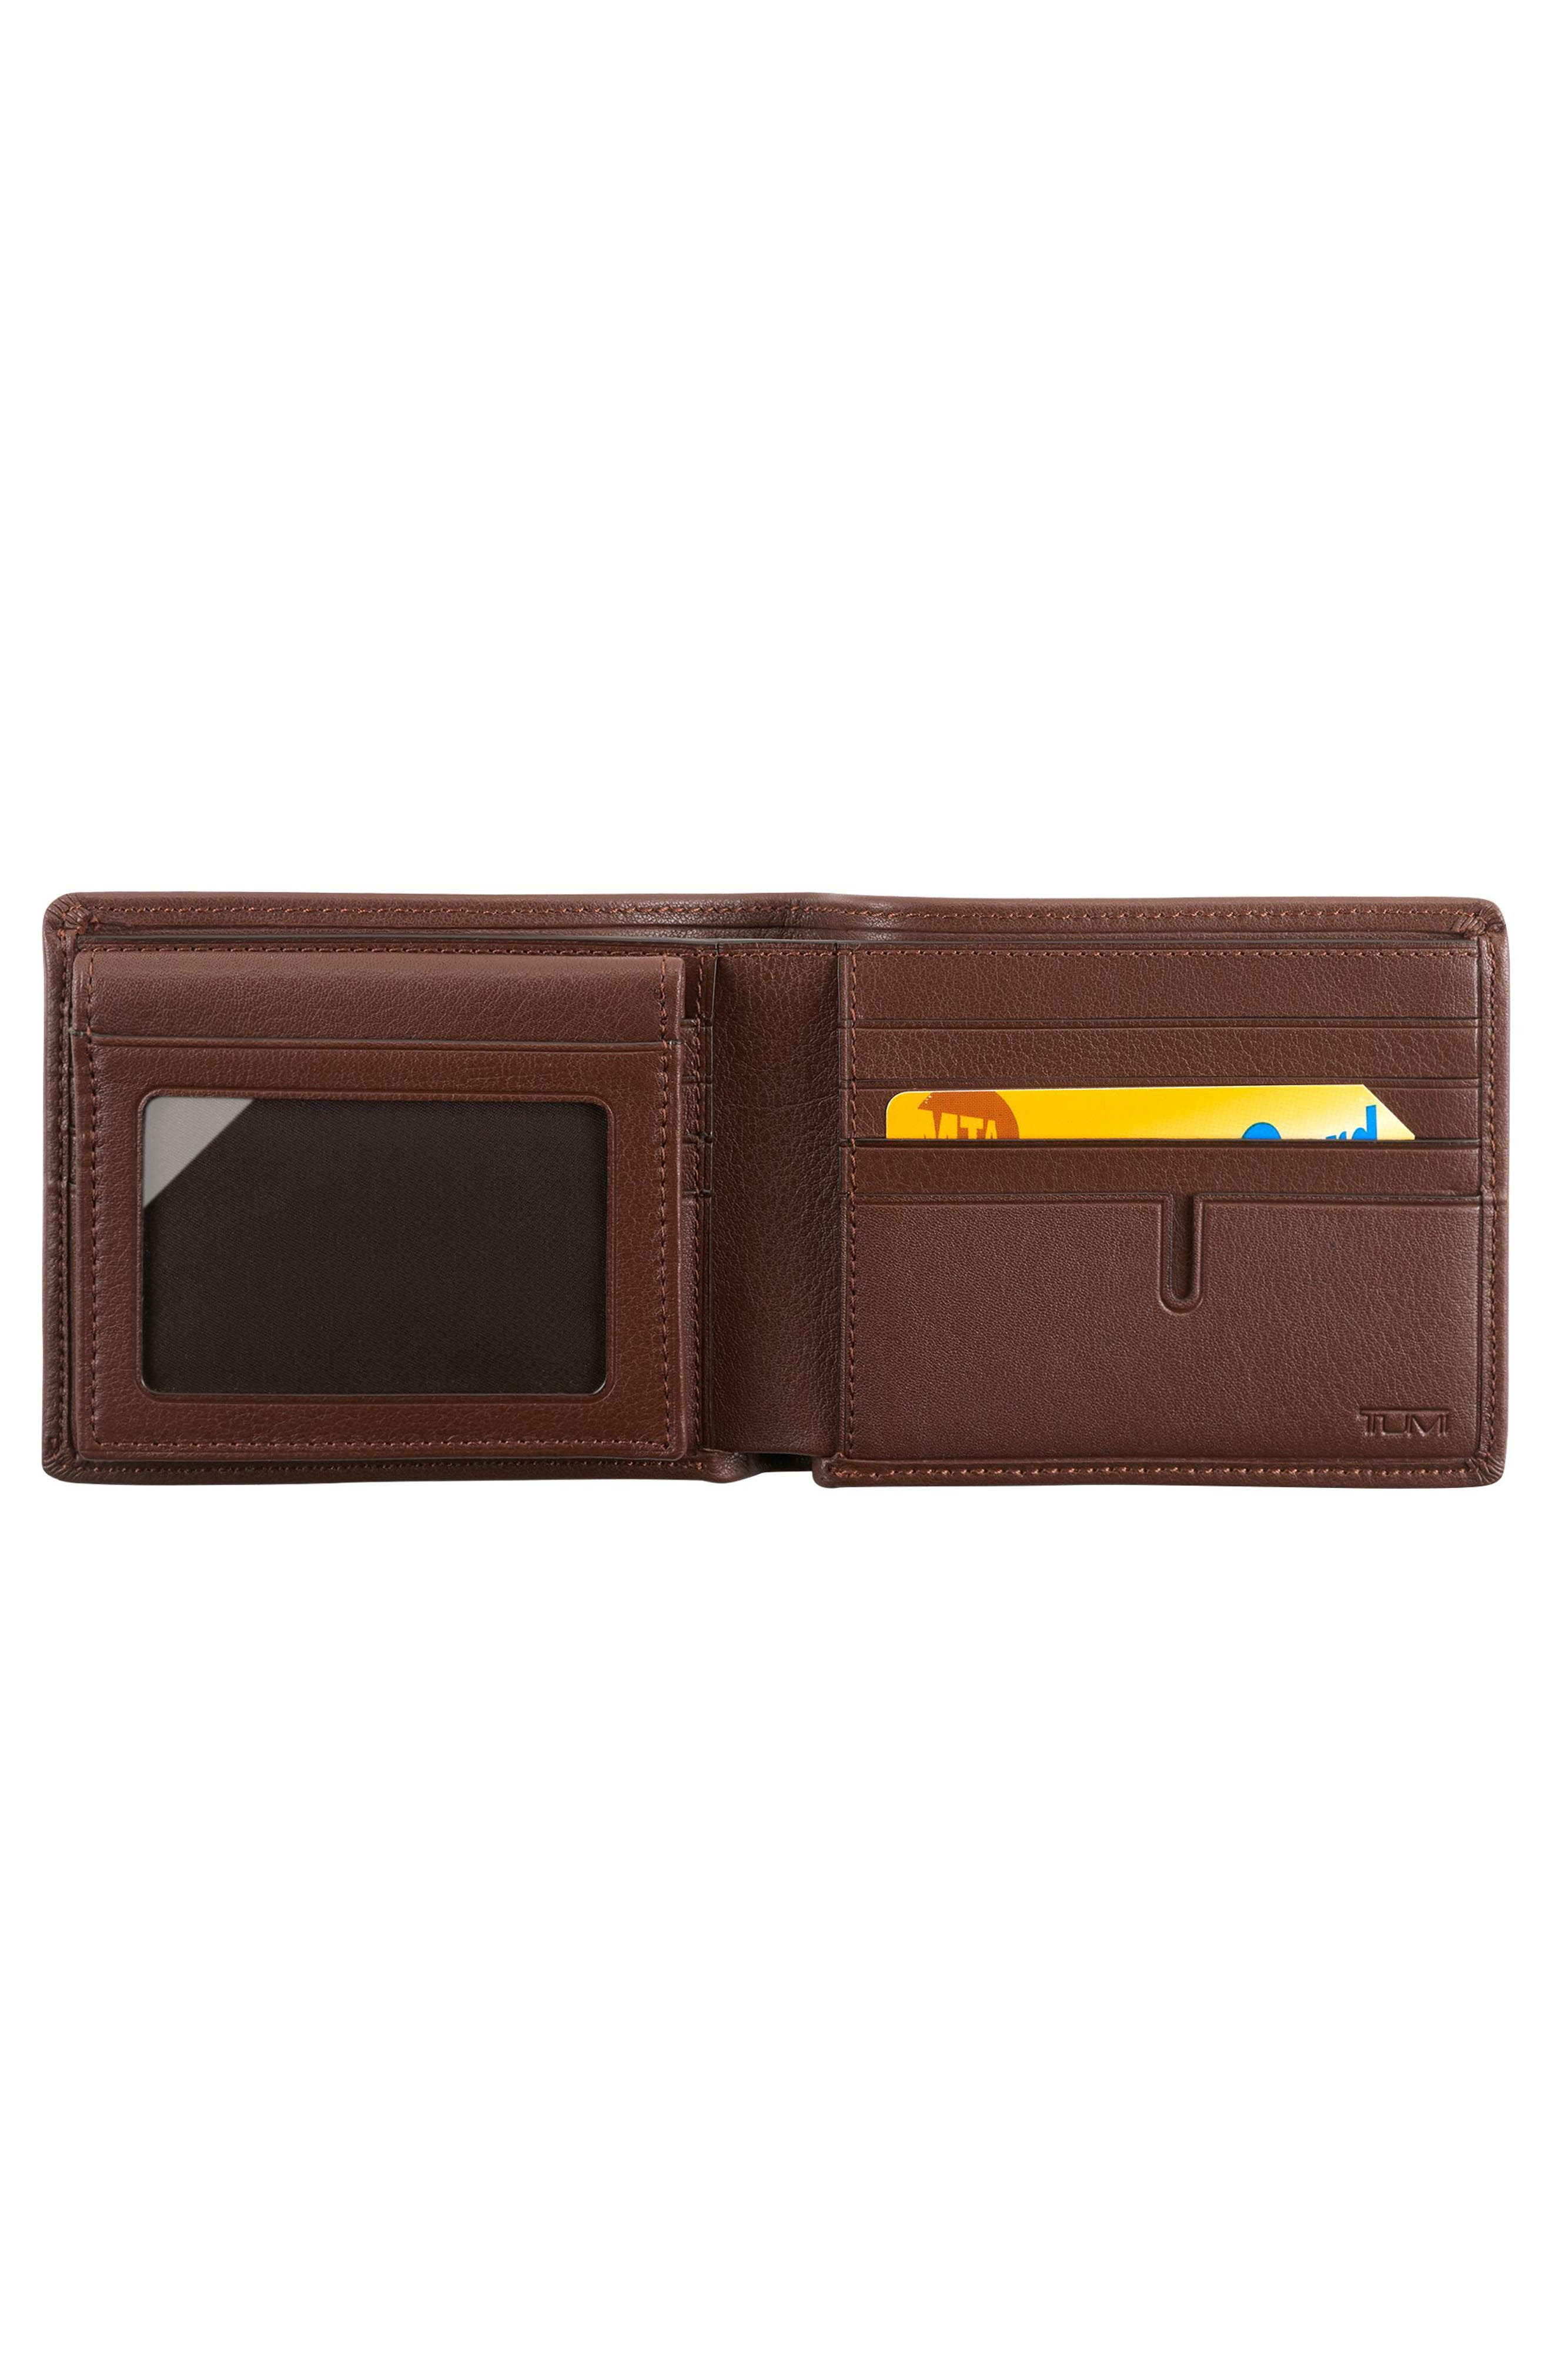 Global Passcase Wallet,                             Alternate thumbnail 2, color,                             Brown Textured